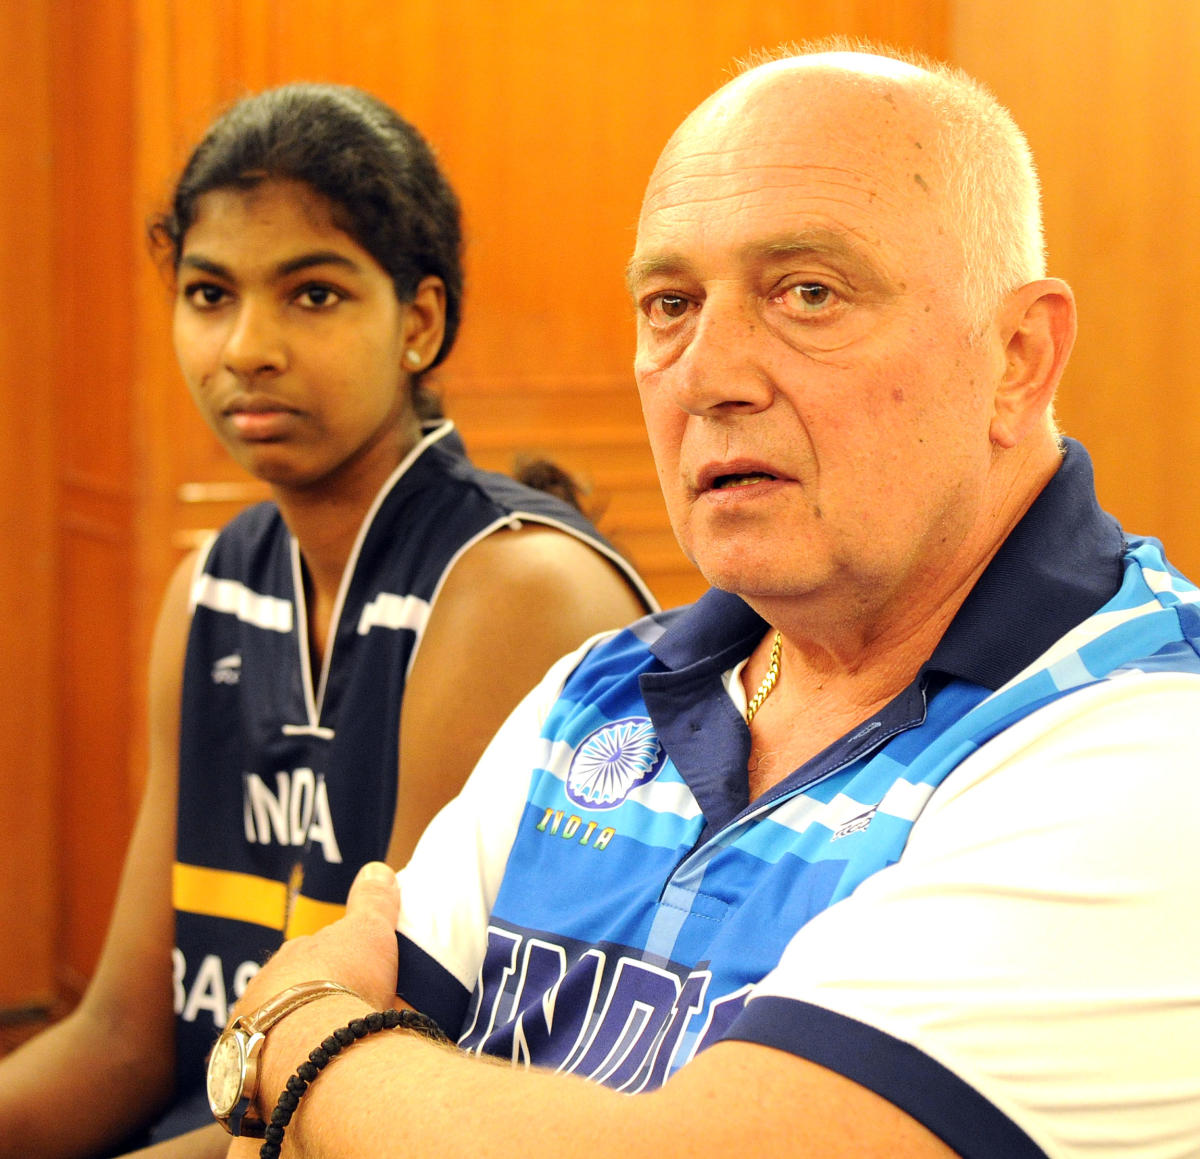 HOPEFUL Indian coach Zoran Visic addresses the media as captain Pushpa Senthil Kumar looks on. DH Photo